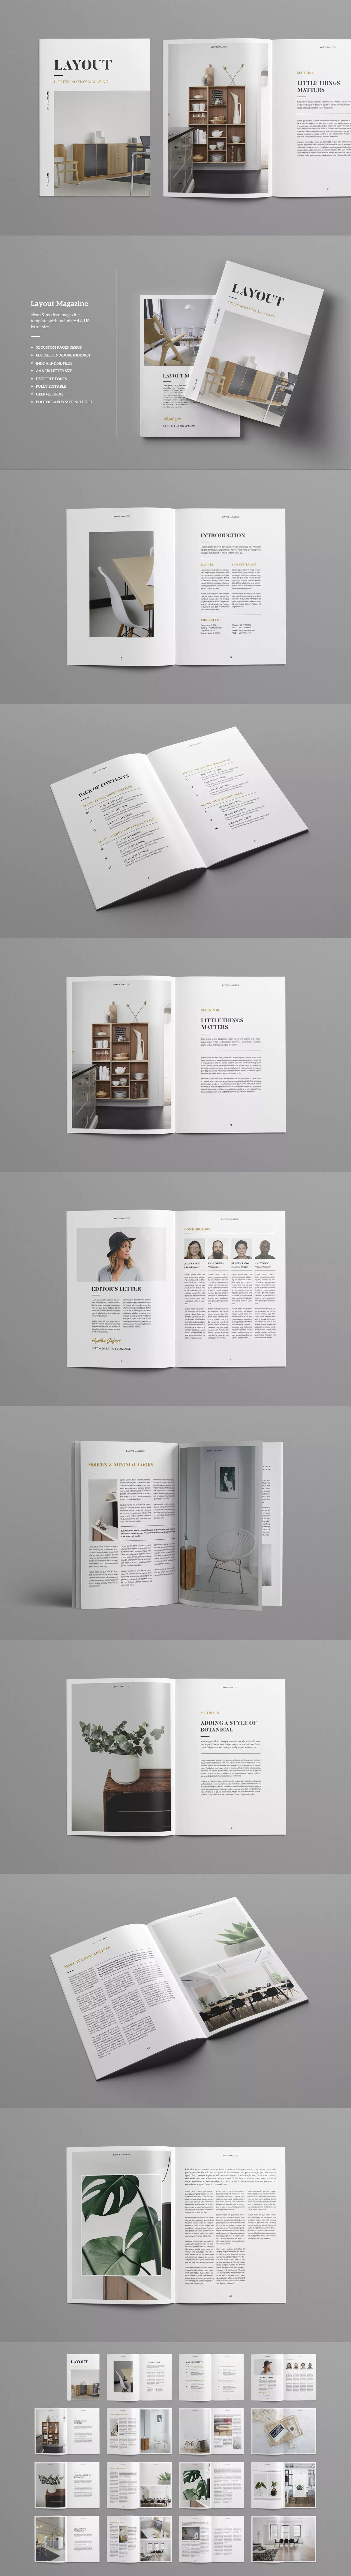 Magazine Template InDesign INDD - A4 & US Letter | Magazine ...